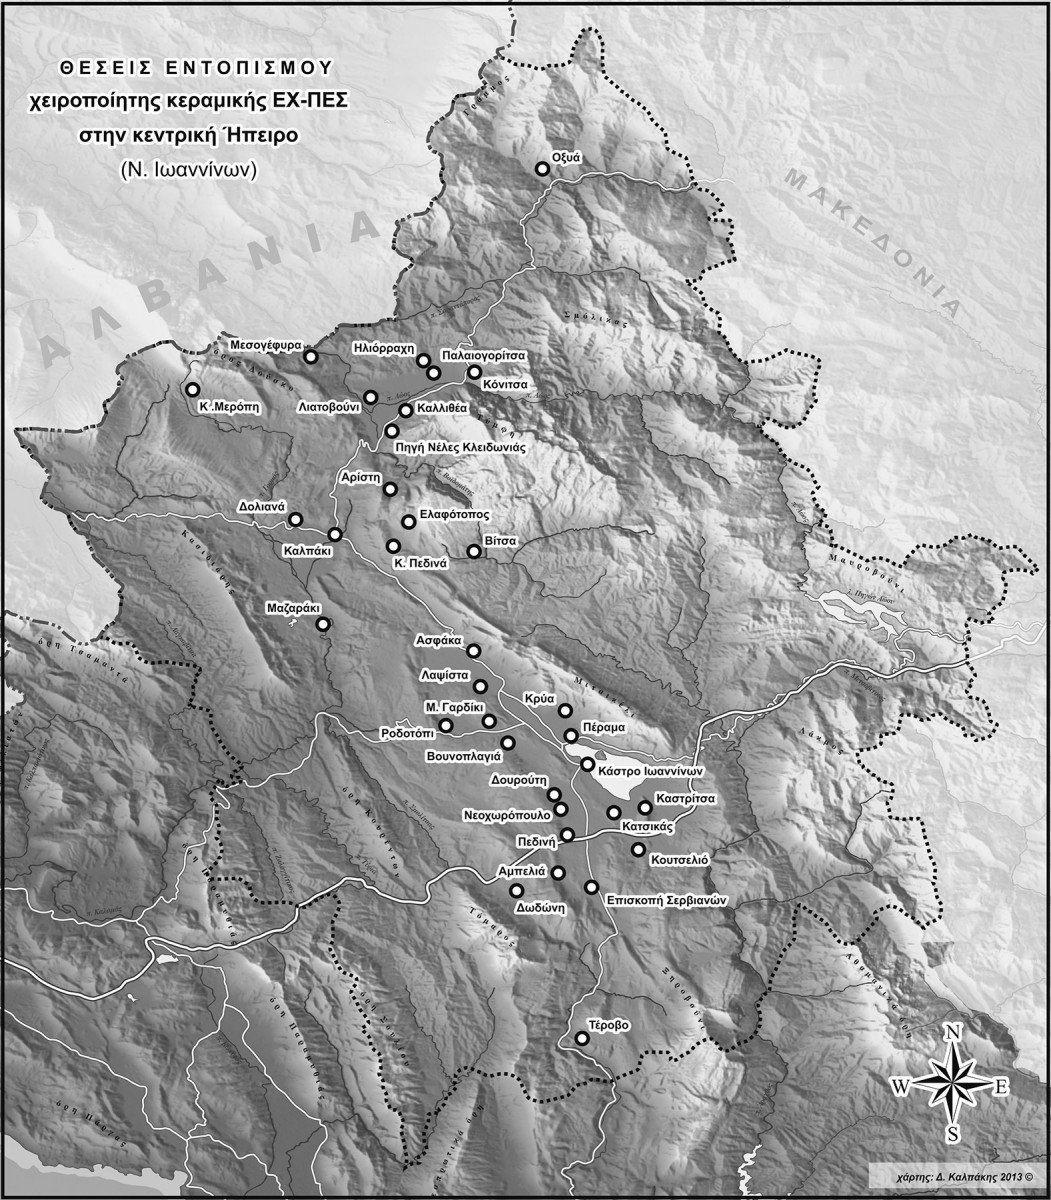 Fig. 1. Map of central Epirus with the Bronze Age and the Early Iron Age sites (source: author's archive).